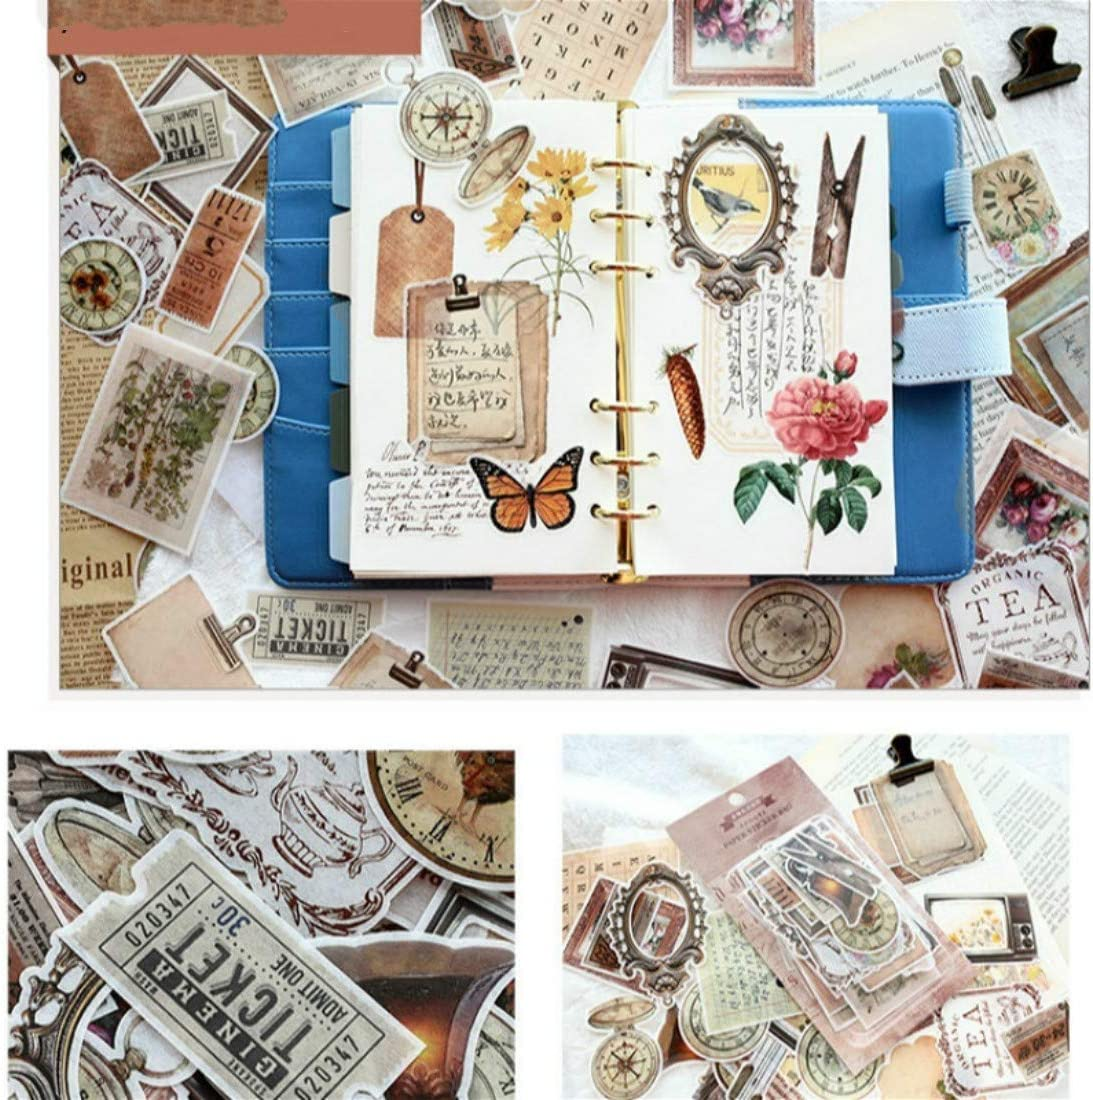 DIY Notebook Laptop Stickers Pack Vsco Girl Kids Washi Sticker for Diary Album Notebook Scrapbook Cell Phone Notebook Suitcase Cute Stationery Sticker Pack of 60pc